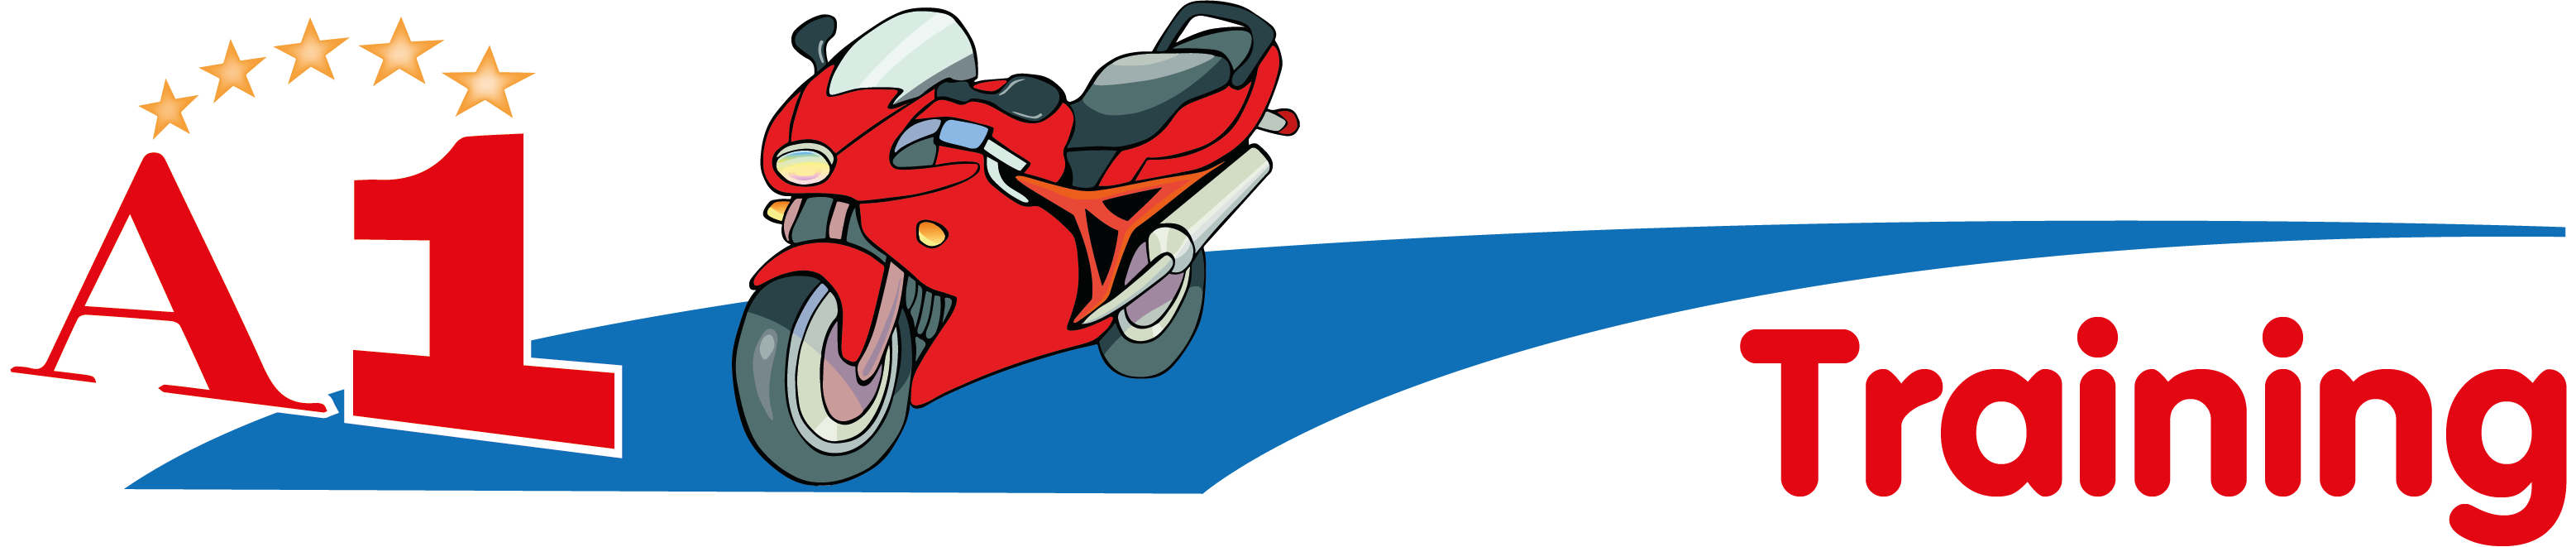 A1 Motorcycle Training logo